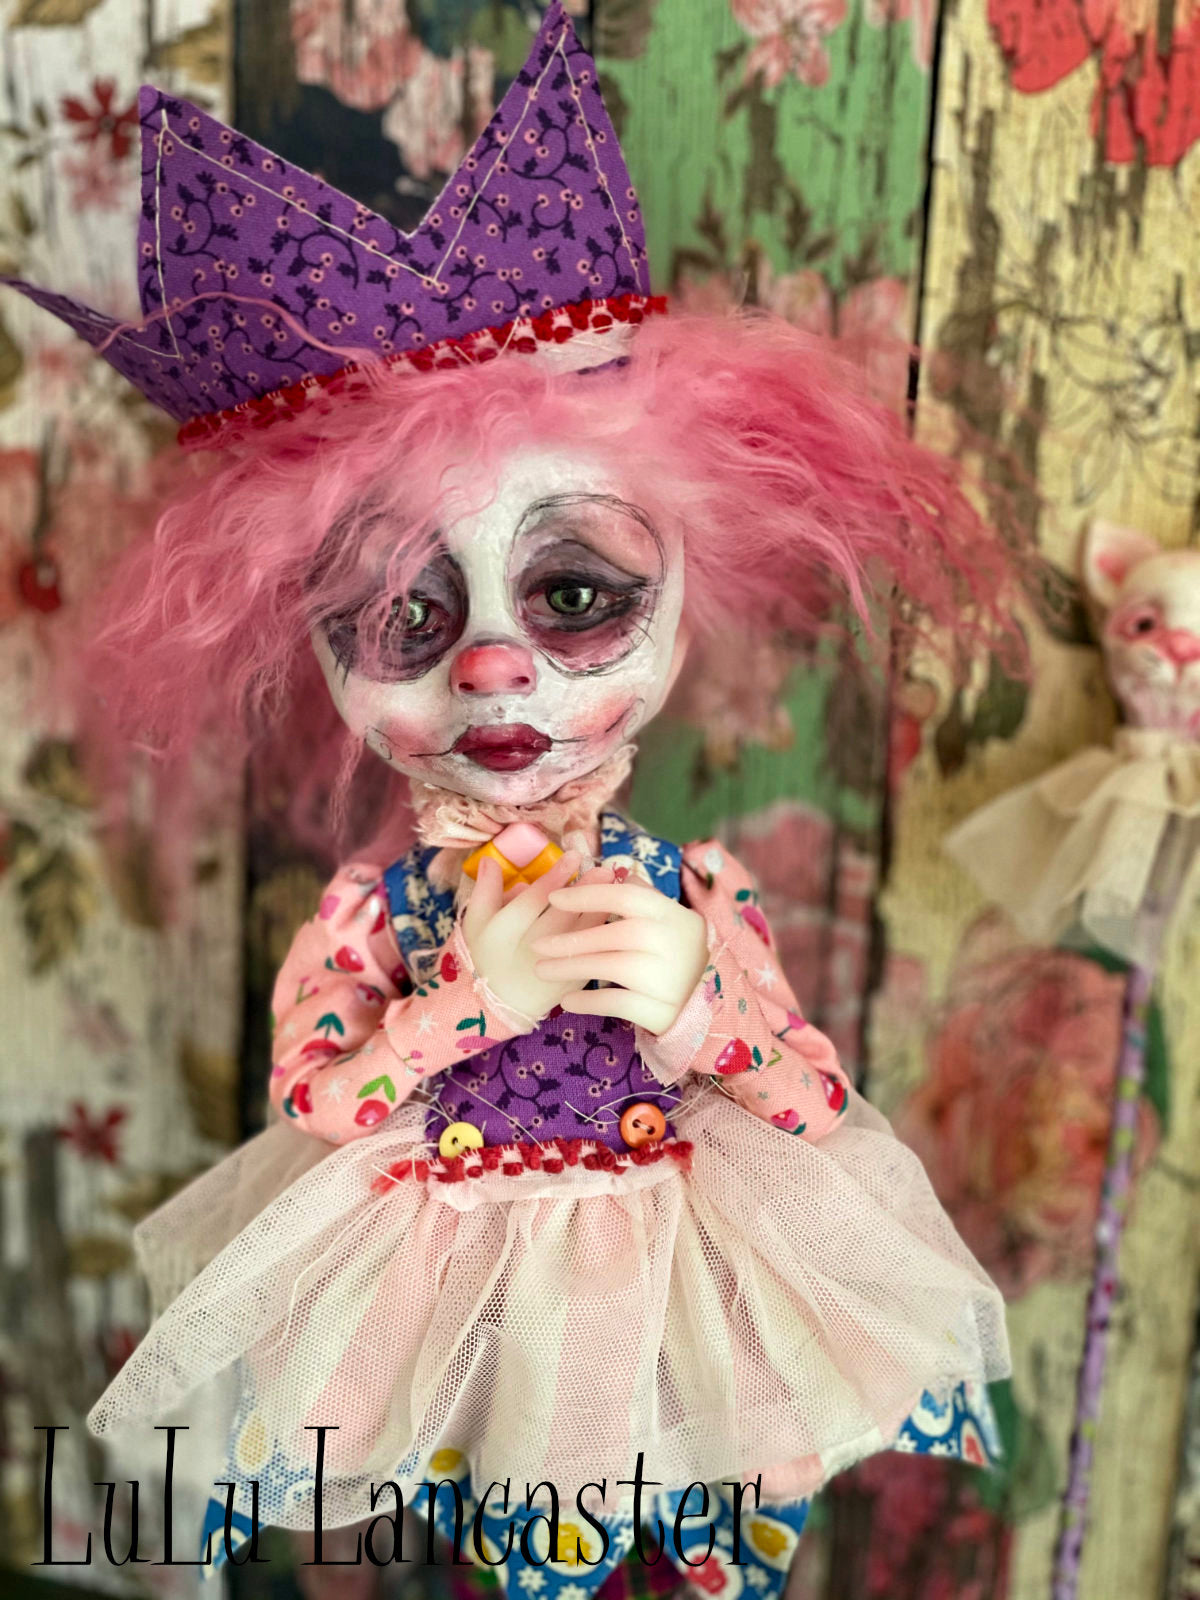 Tootsie PoP Roll the Clown Original Art Dolls by LuLu Lancaster